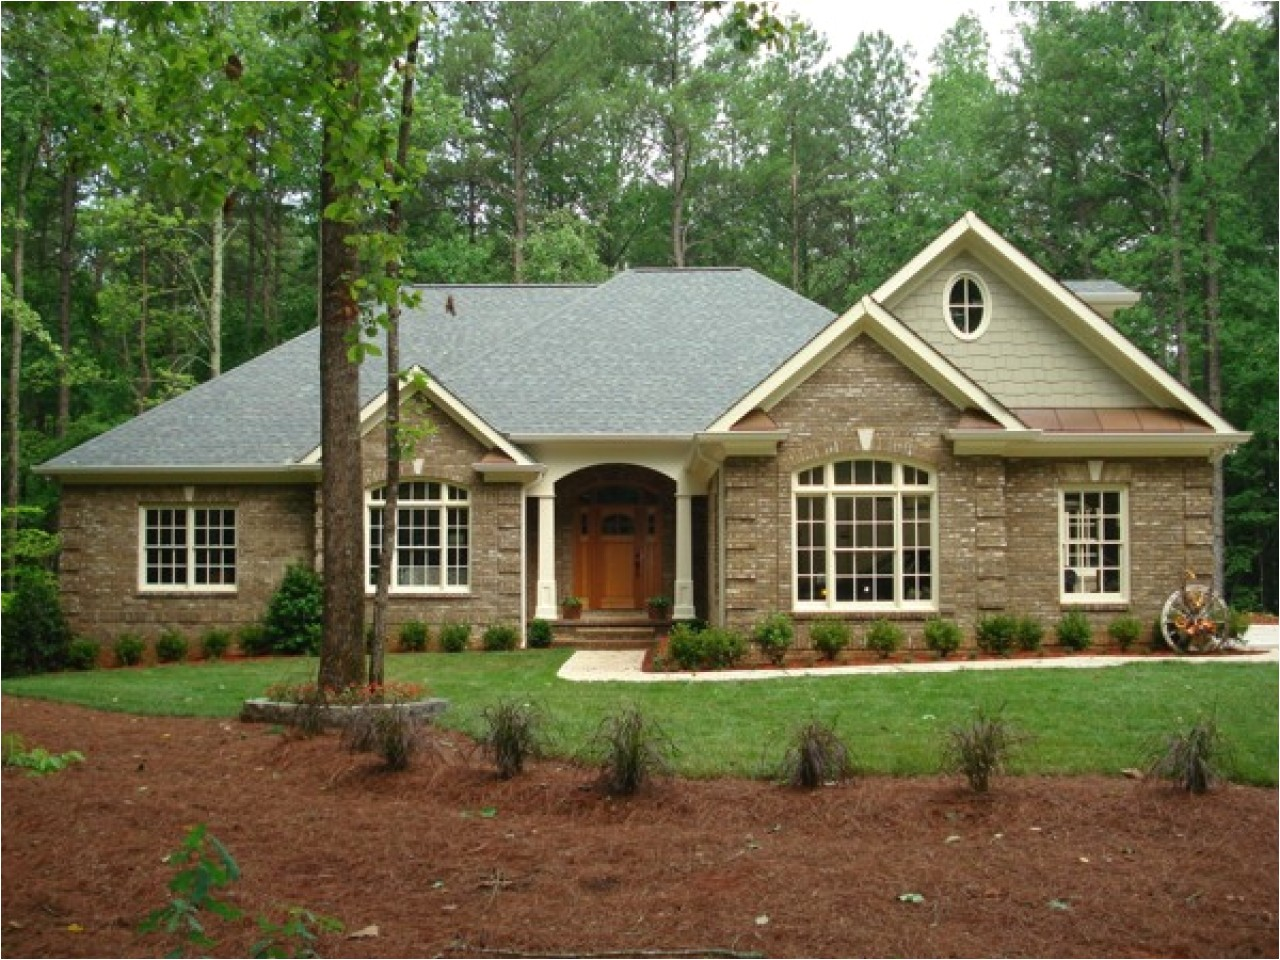 806debceee347743 brick home ranch style house plans modern ranch style homes